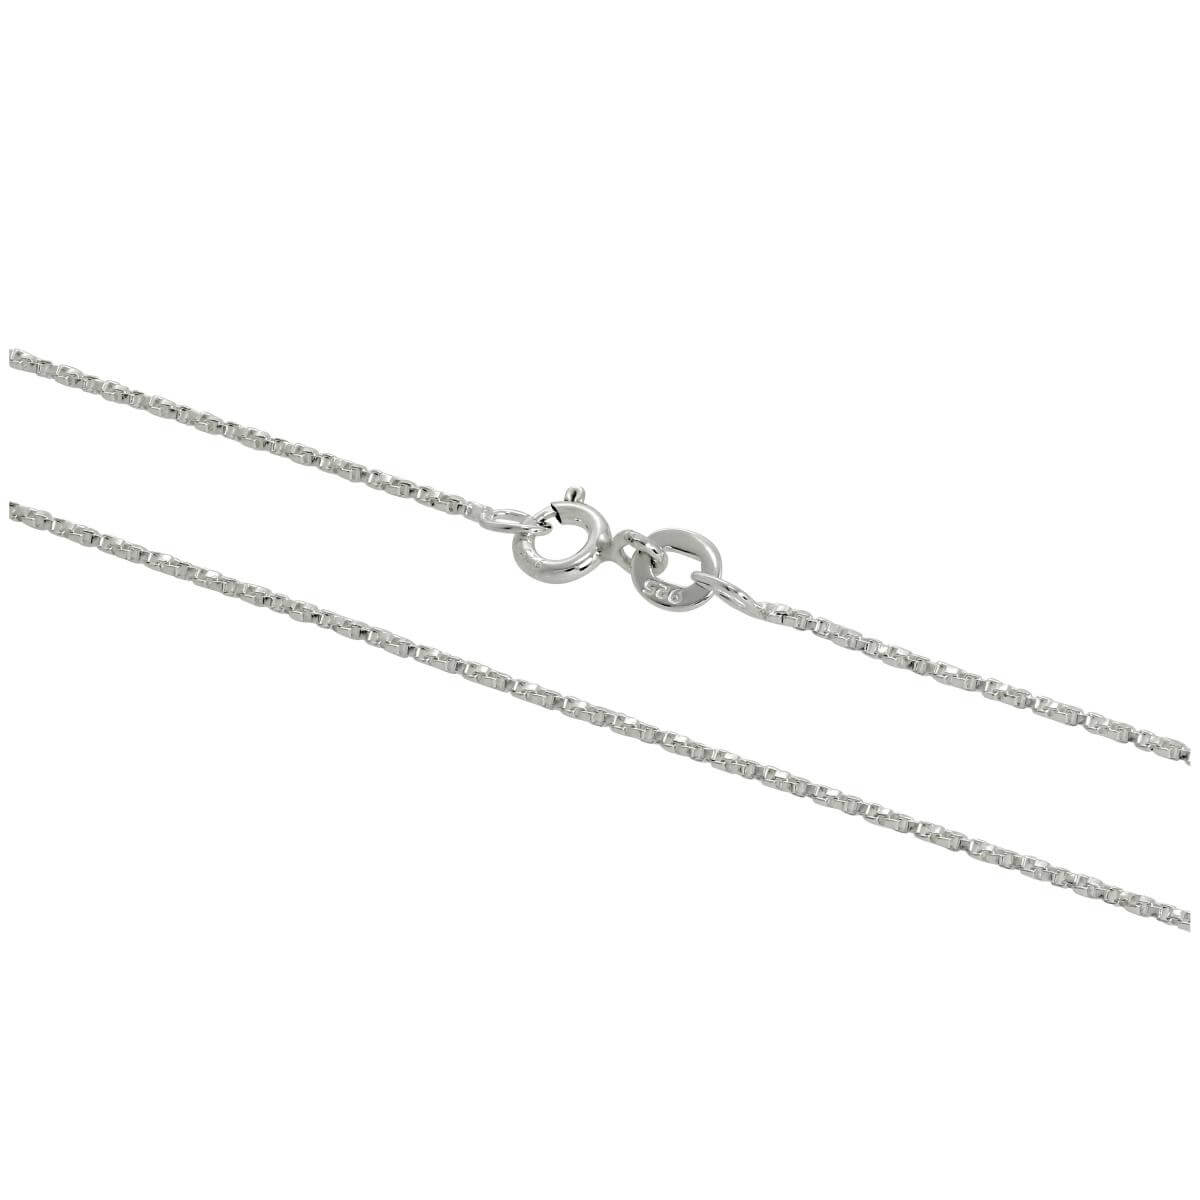 Sterling Silver Twisted Box Chain 16 - 24 Inches